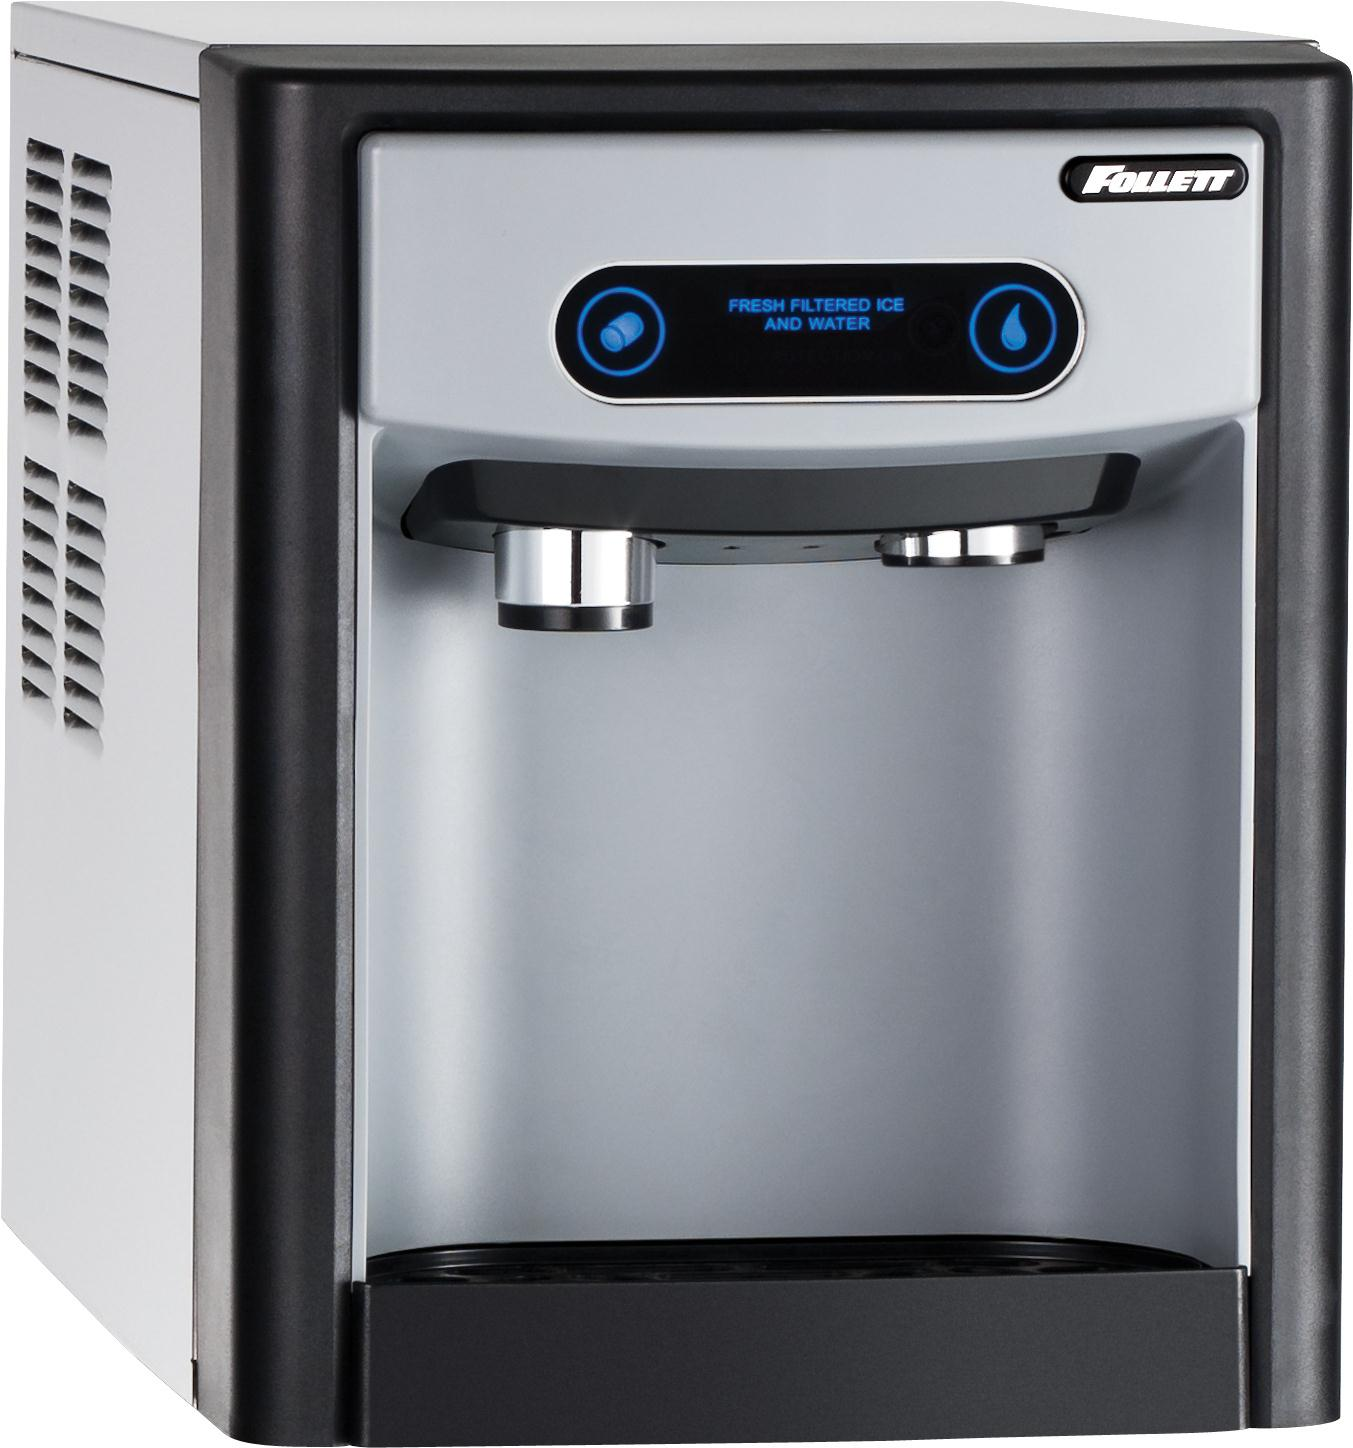 Countertop Ice And Water Dispenser Countertop Ice Maker